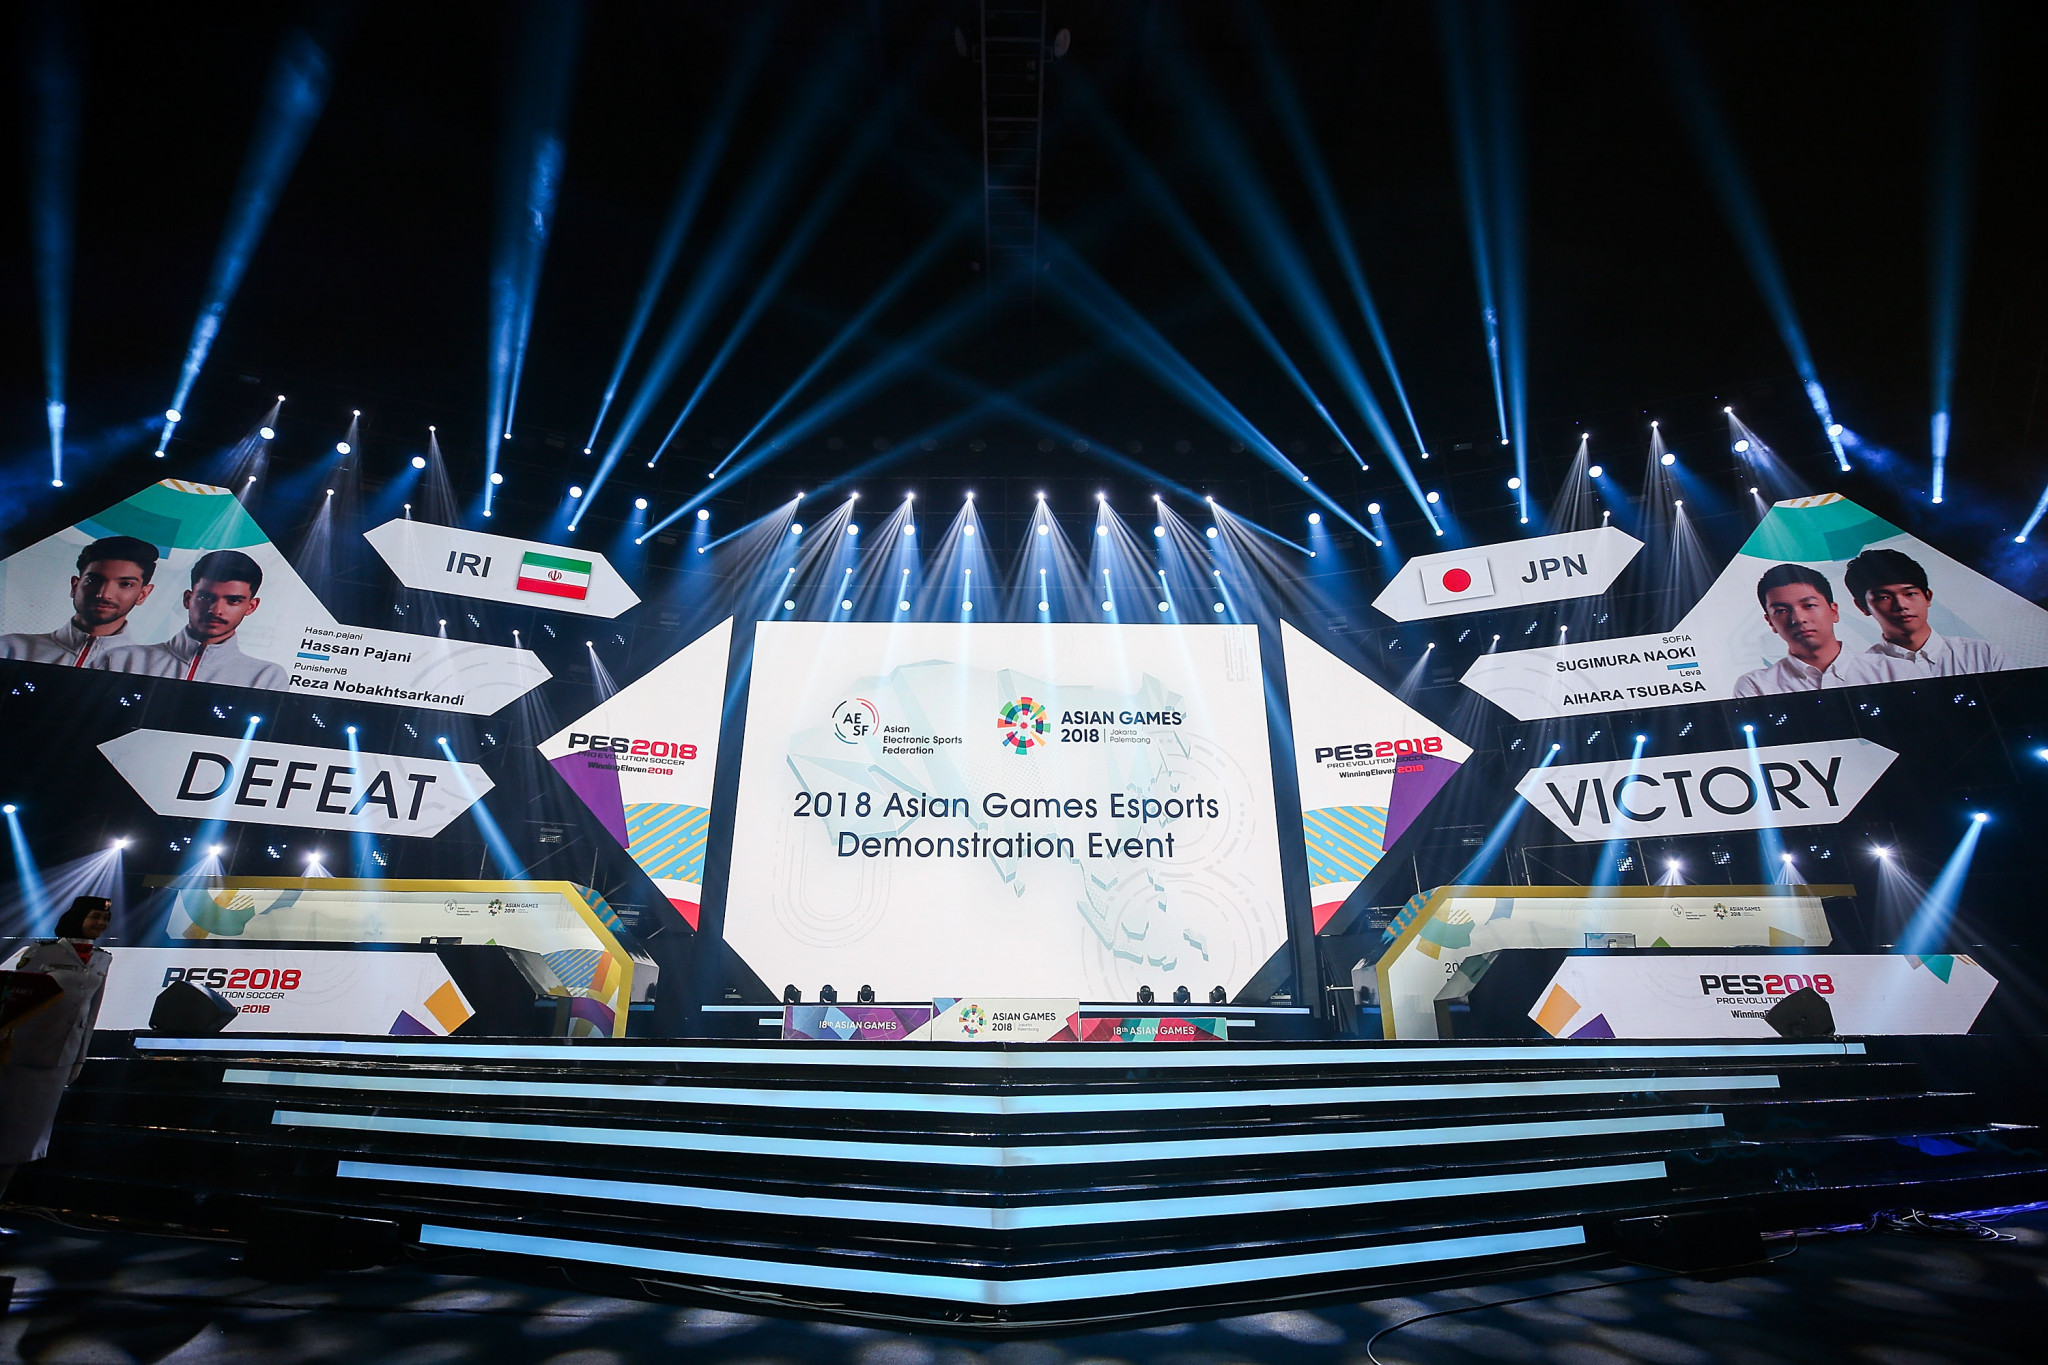 Esports was a demonstration event at the 2018 Asian Games in Jakarta and Palembang ©Getty Images